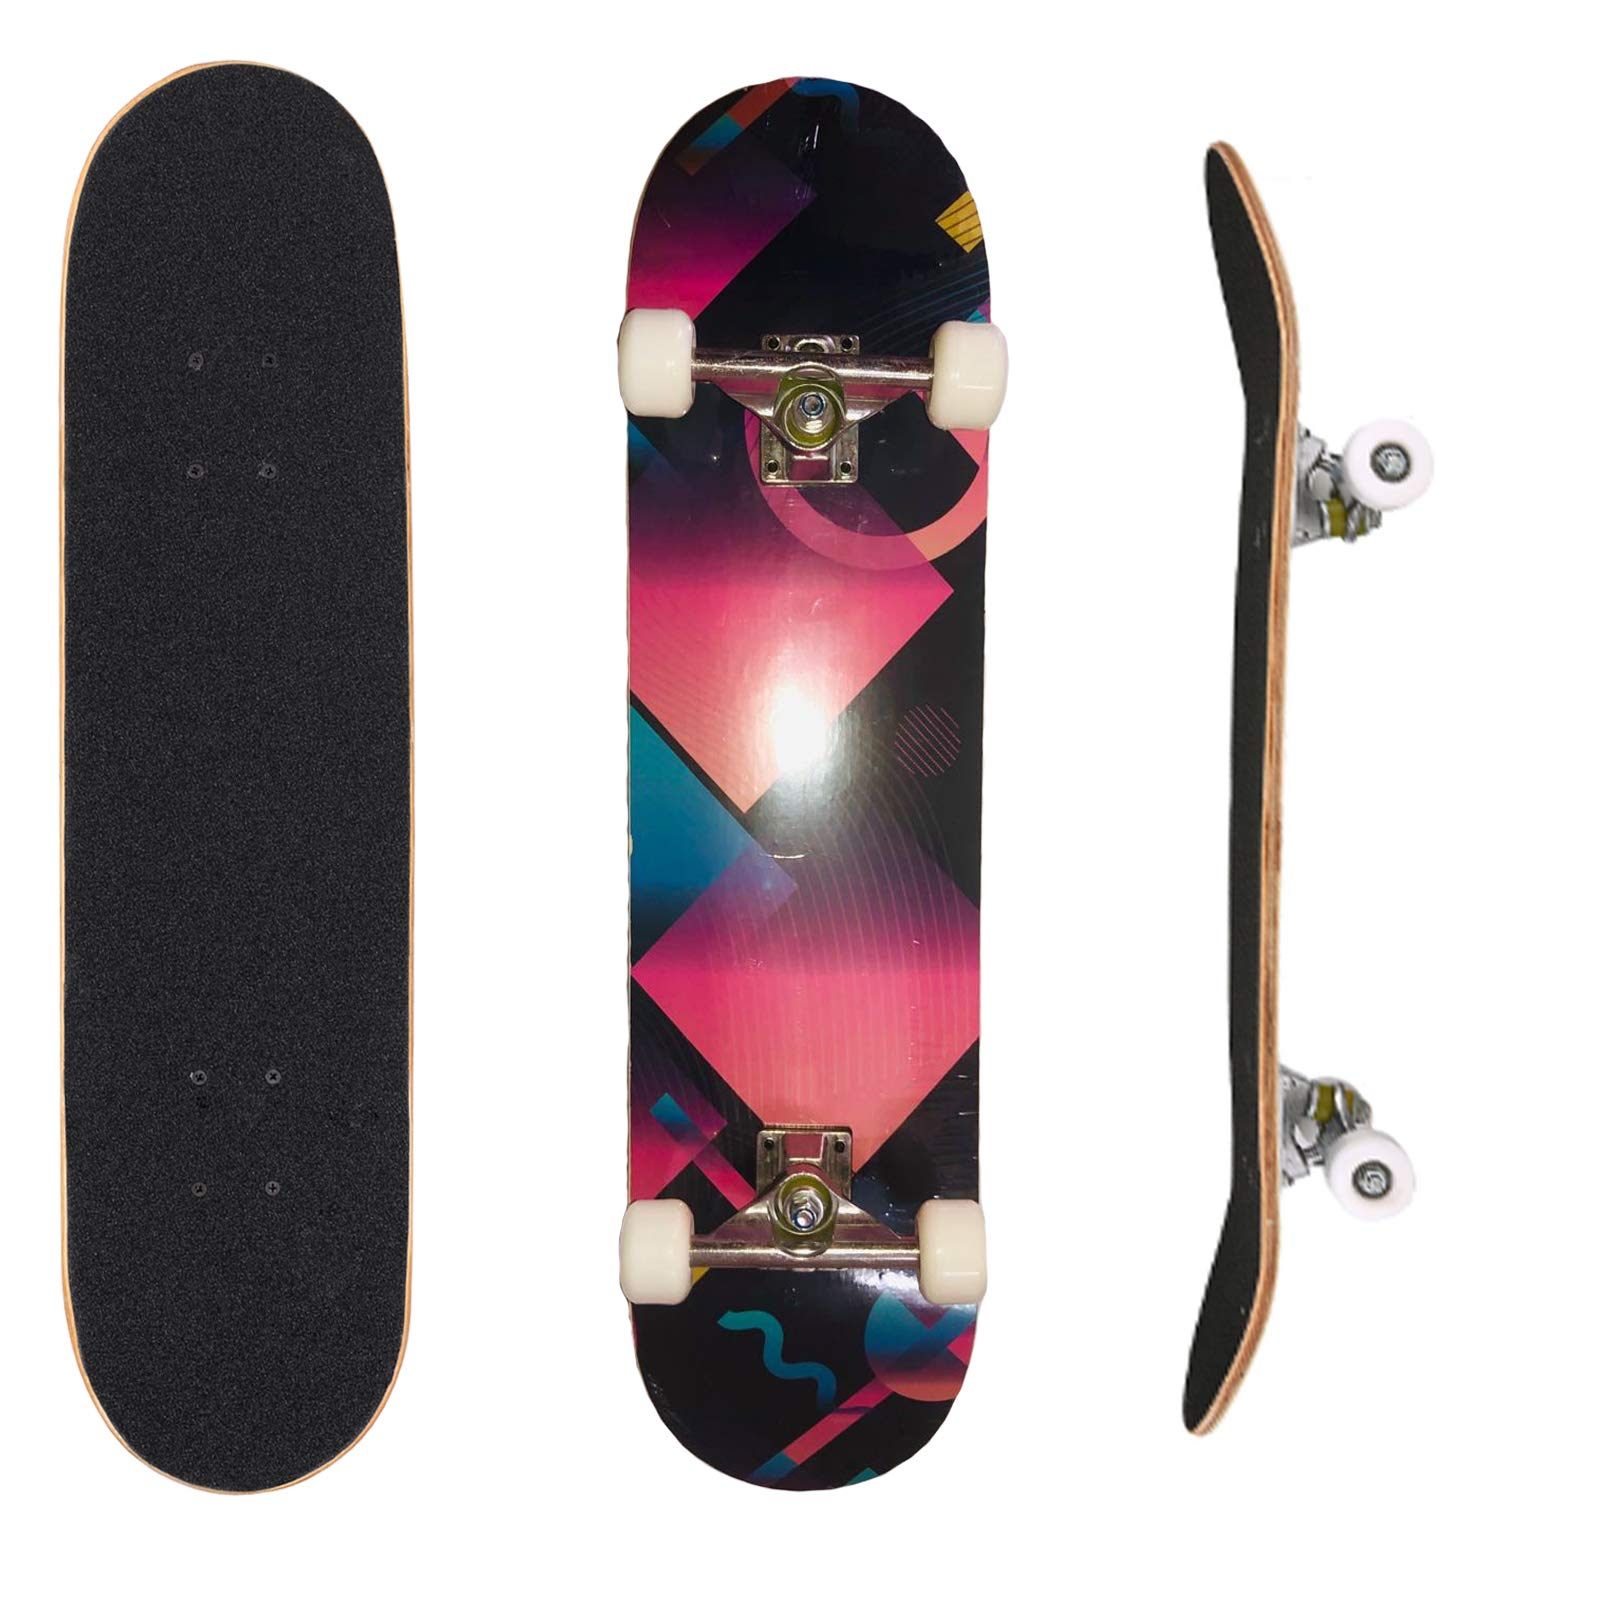 AMHoome 31'' Pro Skateboard Complete 9 Layer Canadian Maple Wood Full Size Double Kick Concave Tricks Skate Board for Chiren Kids Boys Girls 5 Up Years Old